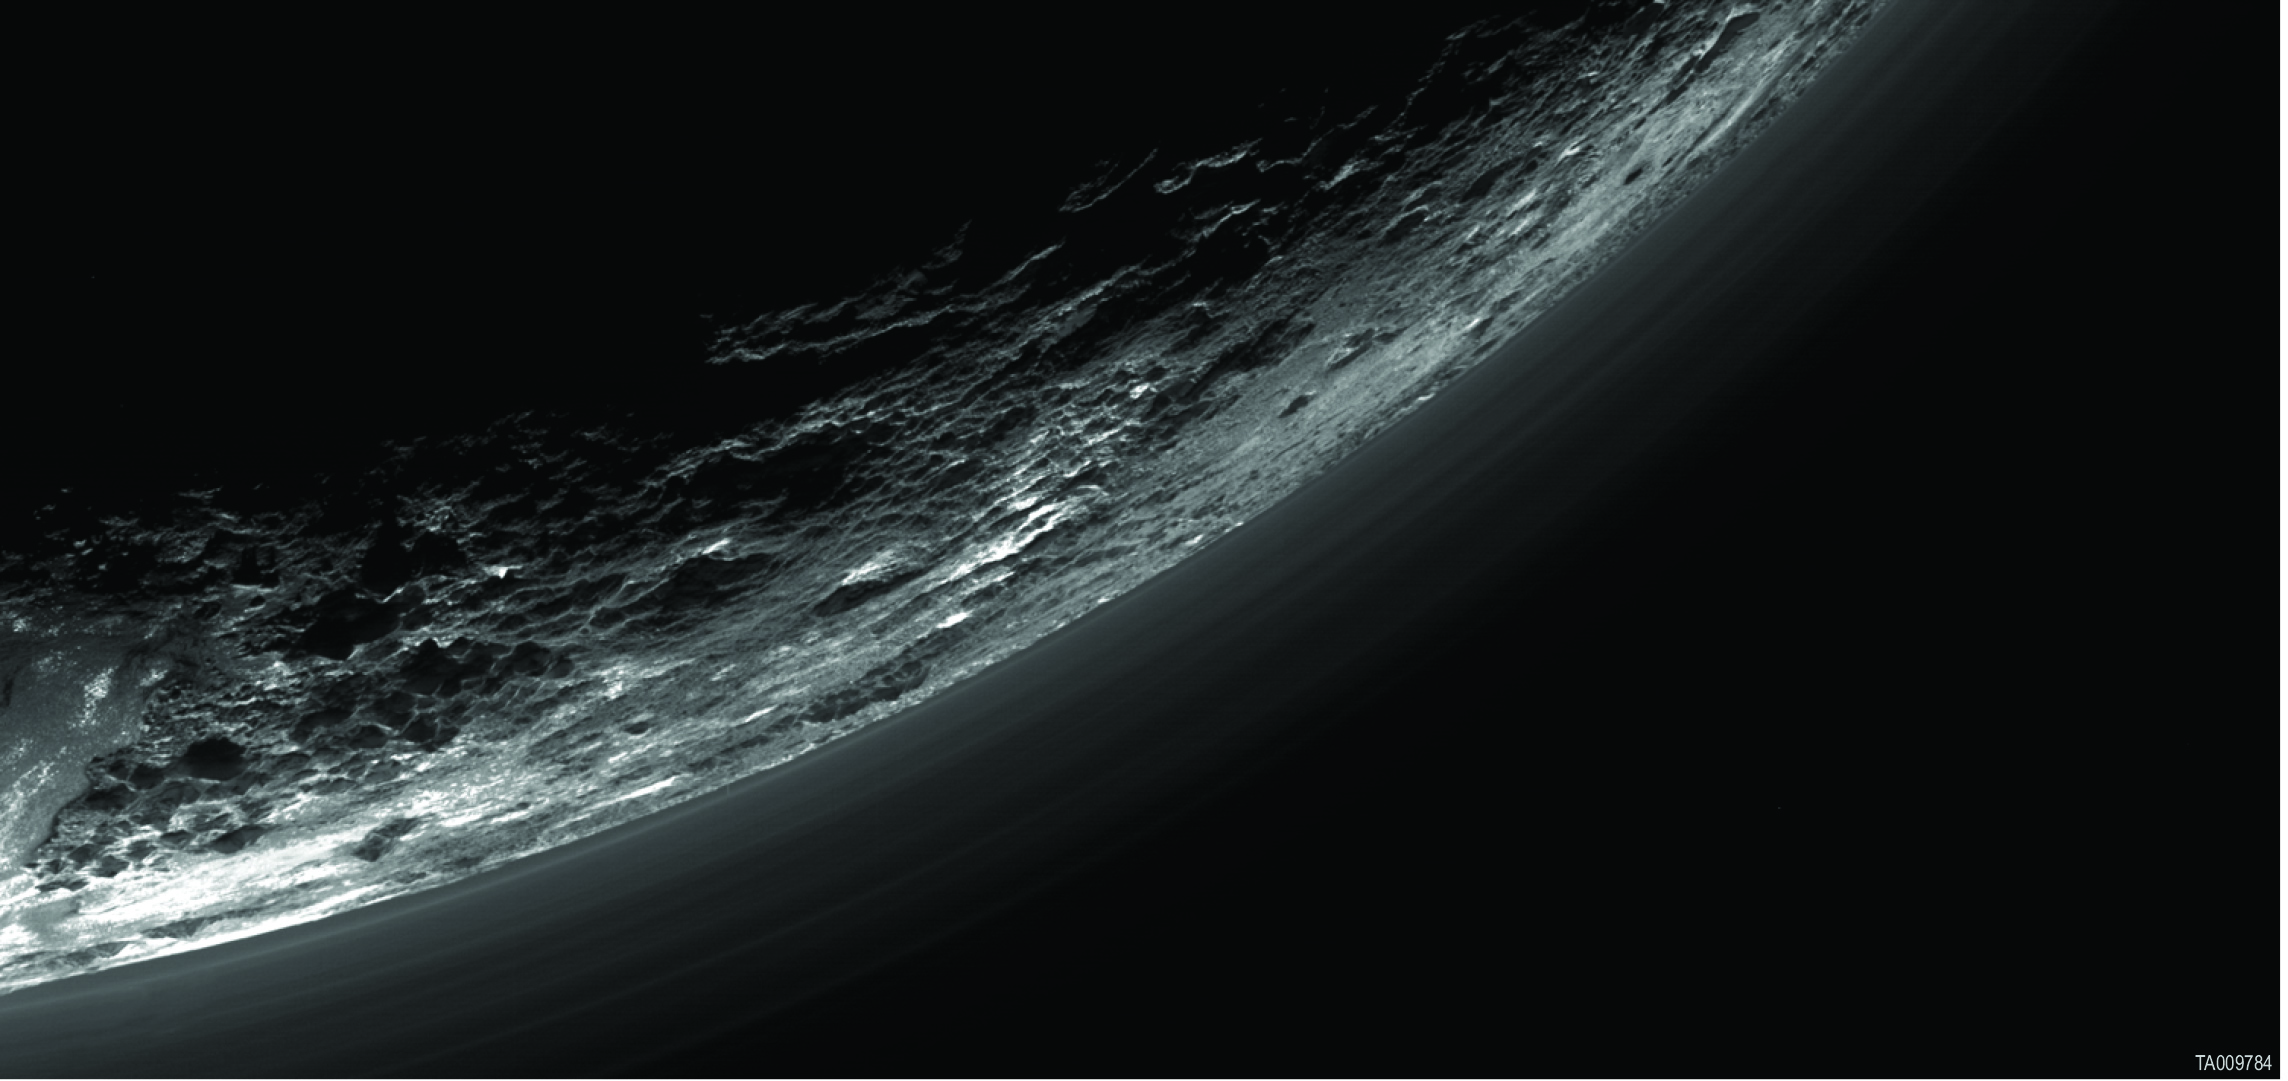 Layering in Pluto's atmosphere may form thanks to gravity waves, according to scientists with the New Horizons mission.